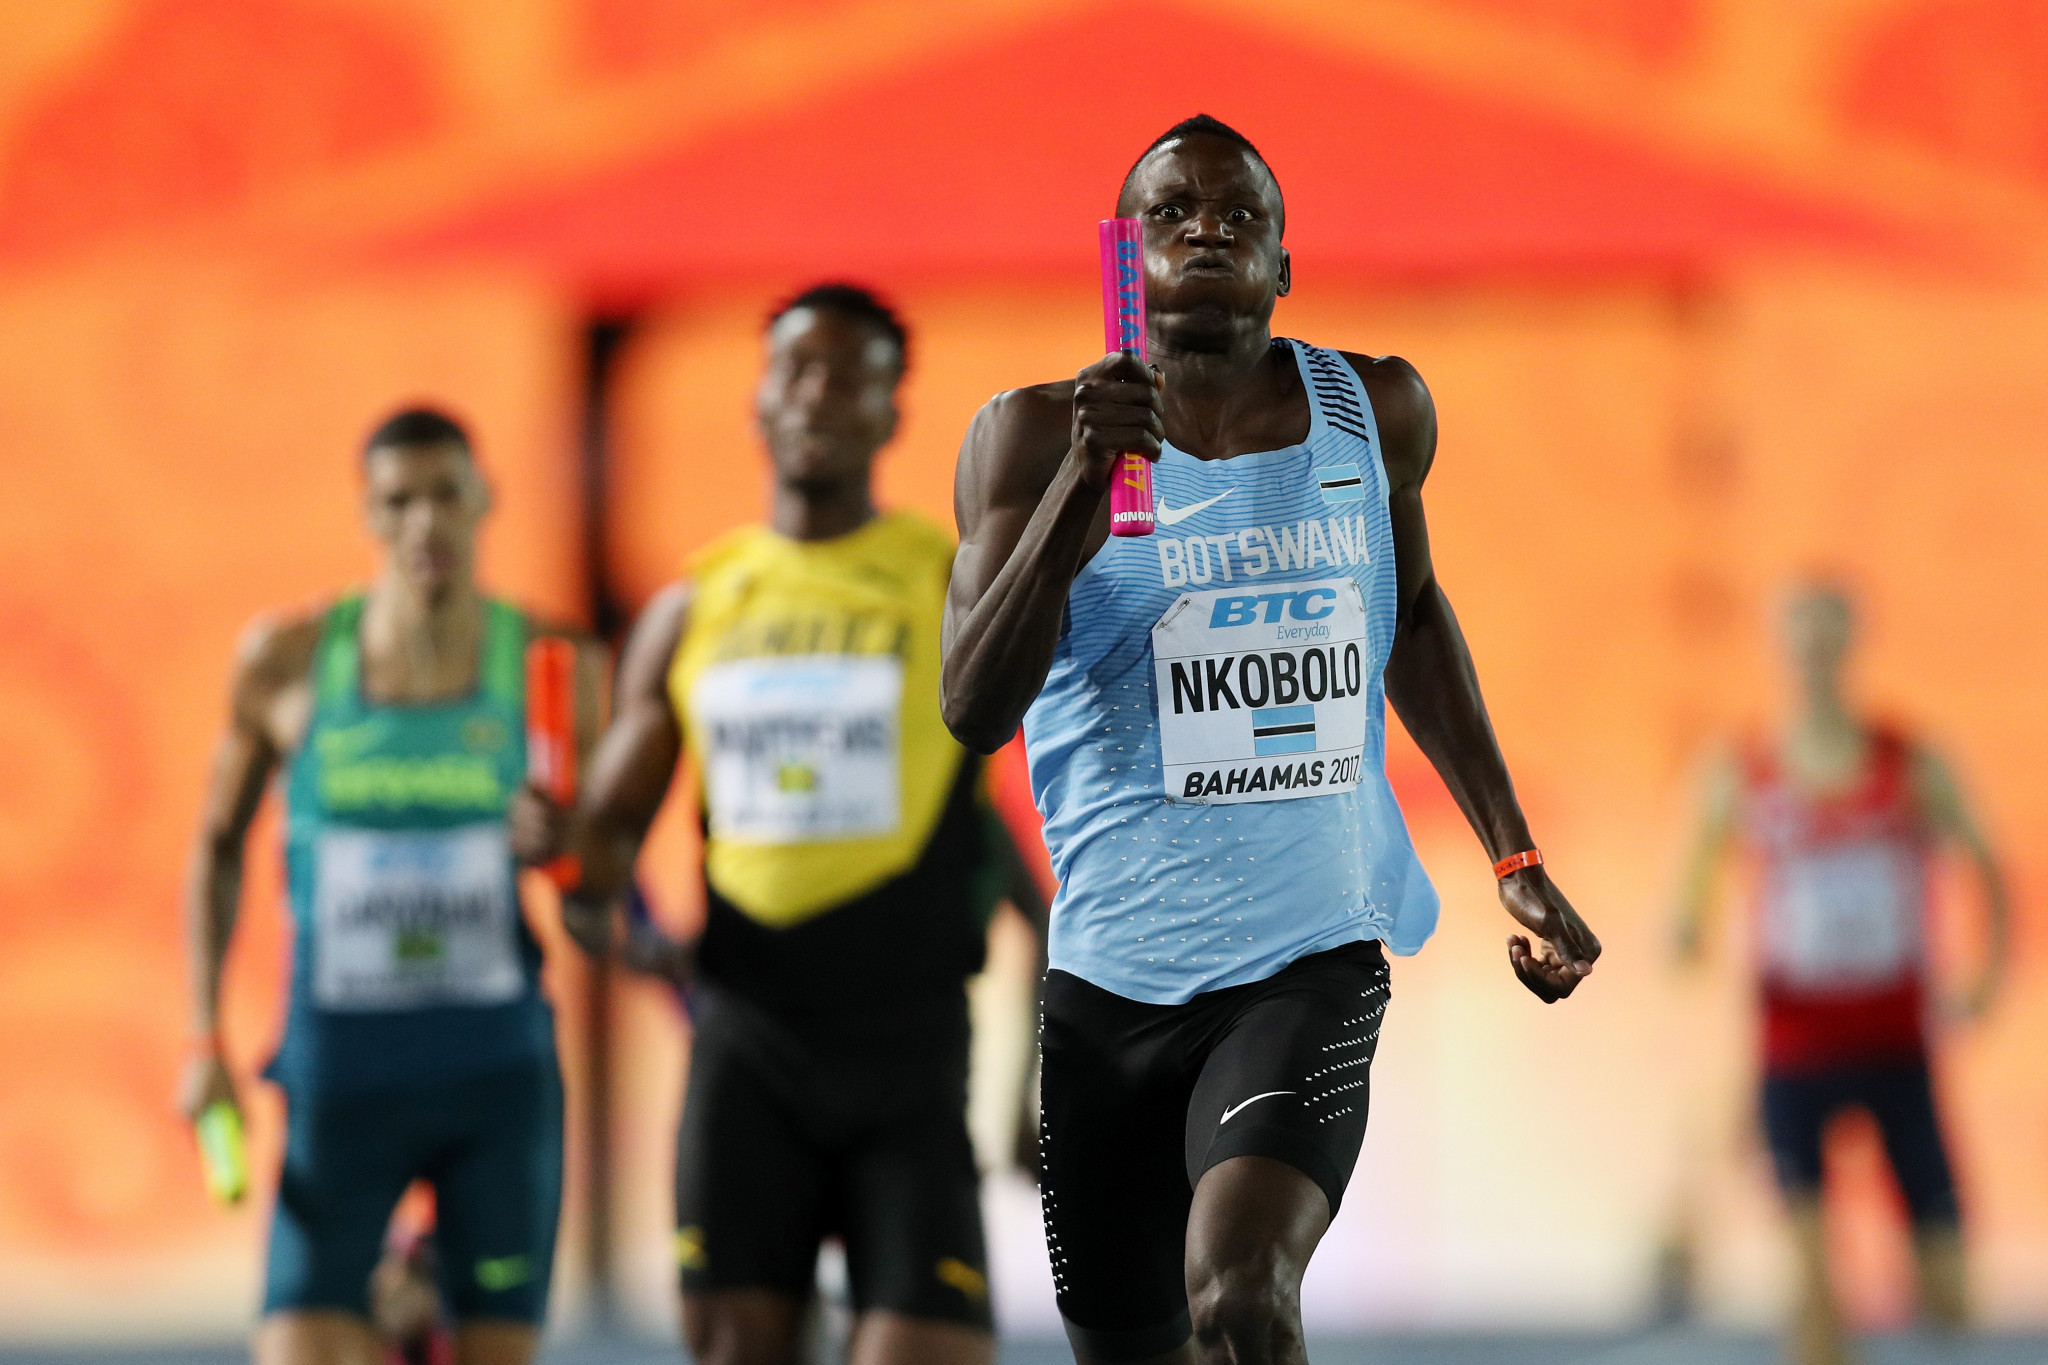 Commonwealth Games relay champion Nkobolo moves hospital but recovery still unclear